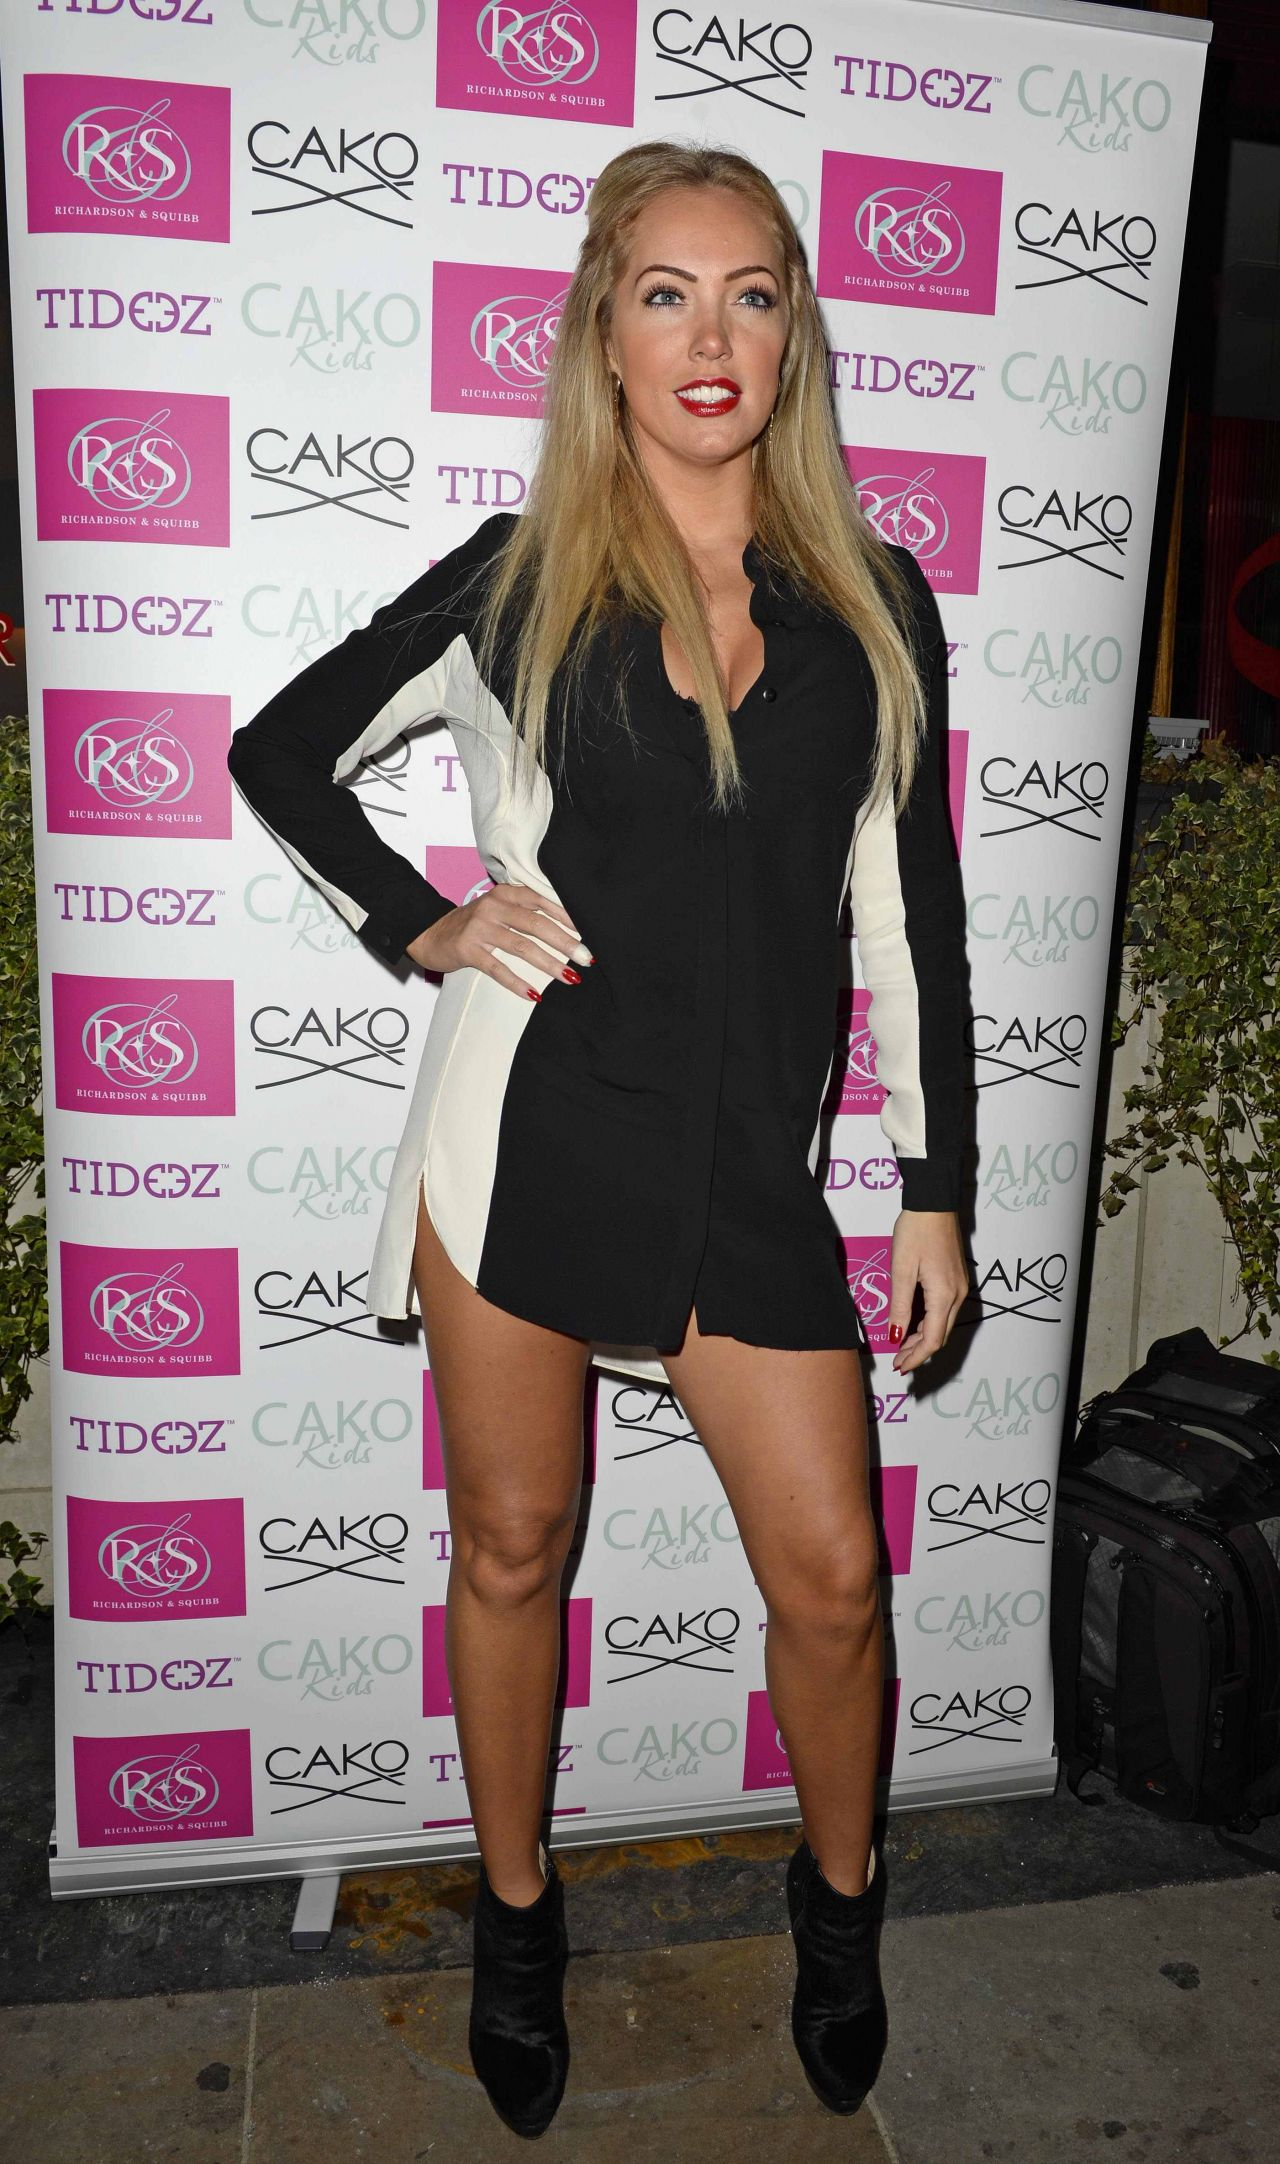 Aisleyne Horgan at Wallace Cako party in London - December 2013